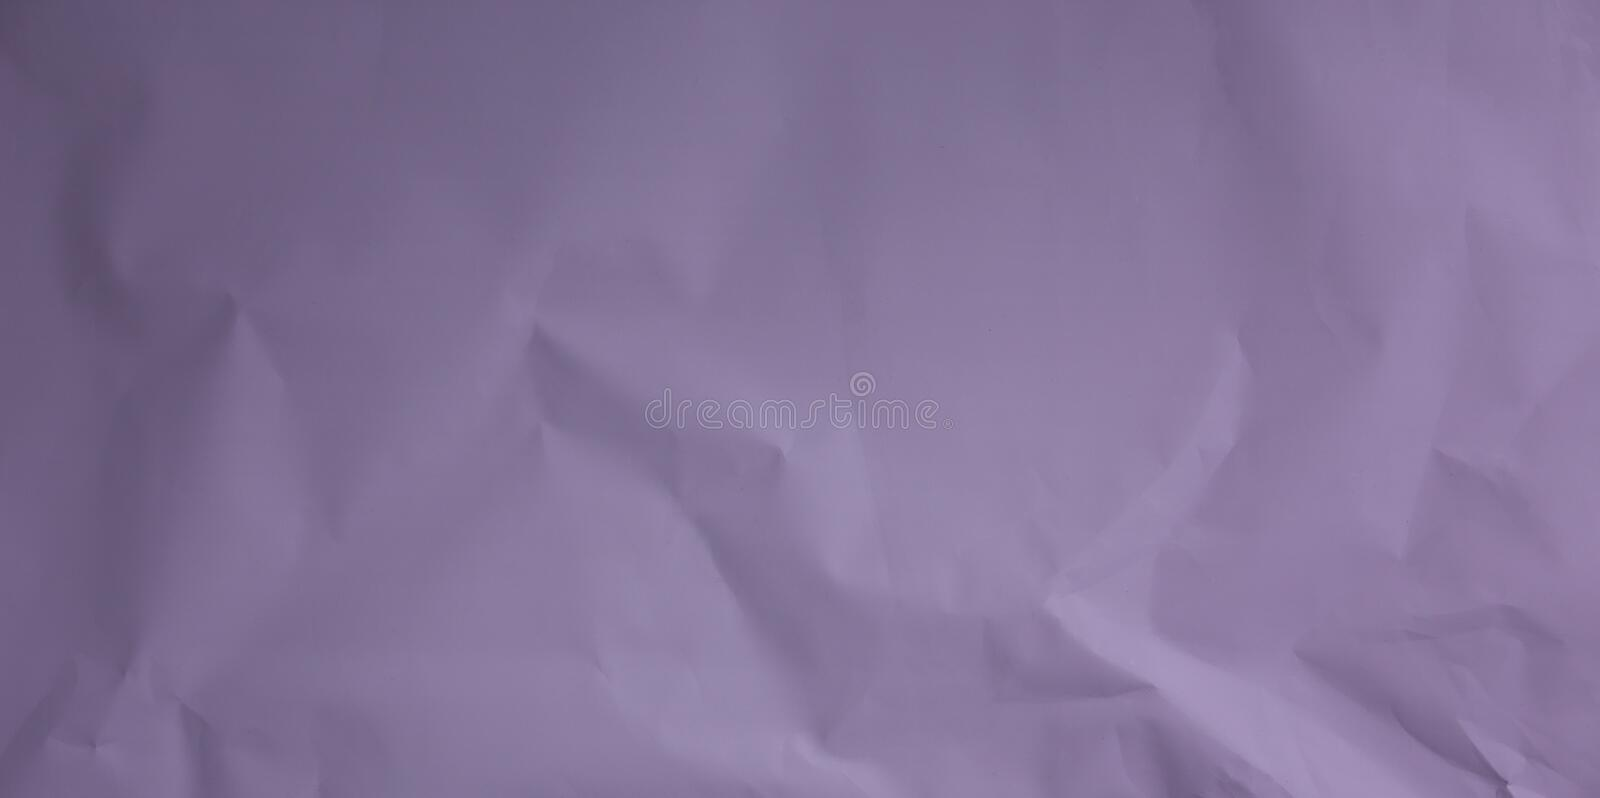 Crumpled purple paper. Vintage background for design royalty free stock images